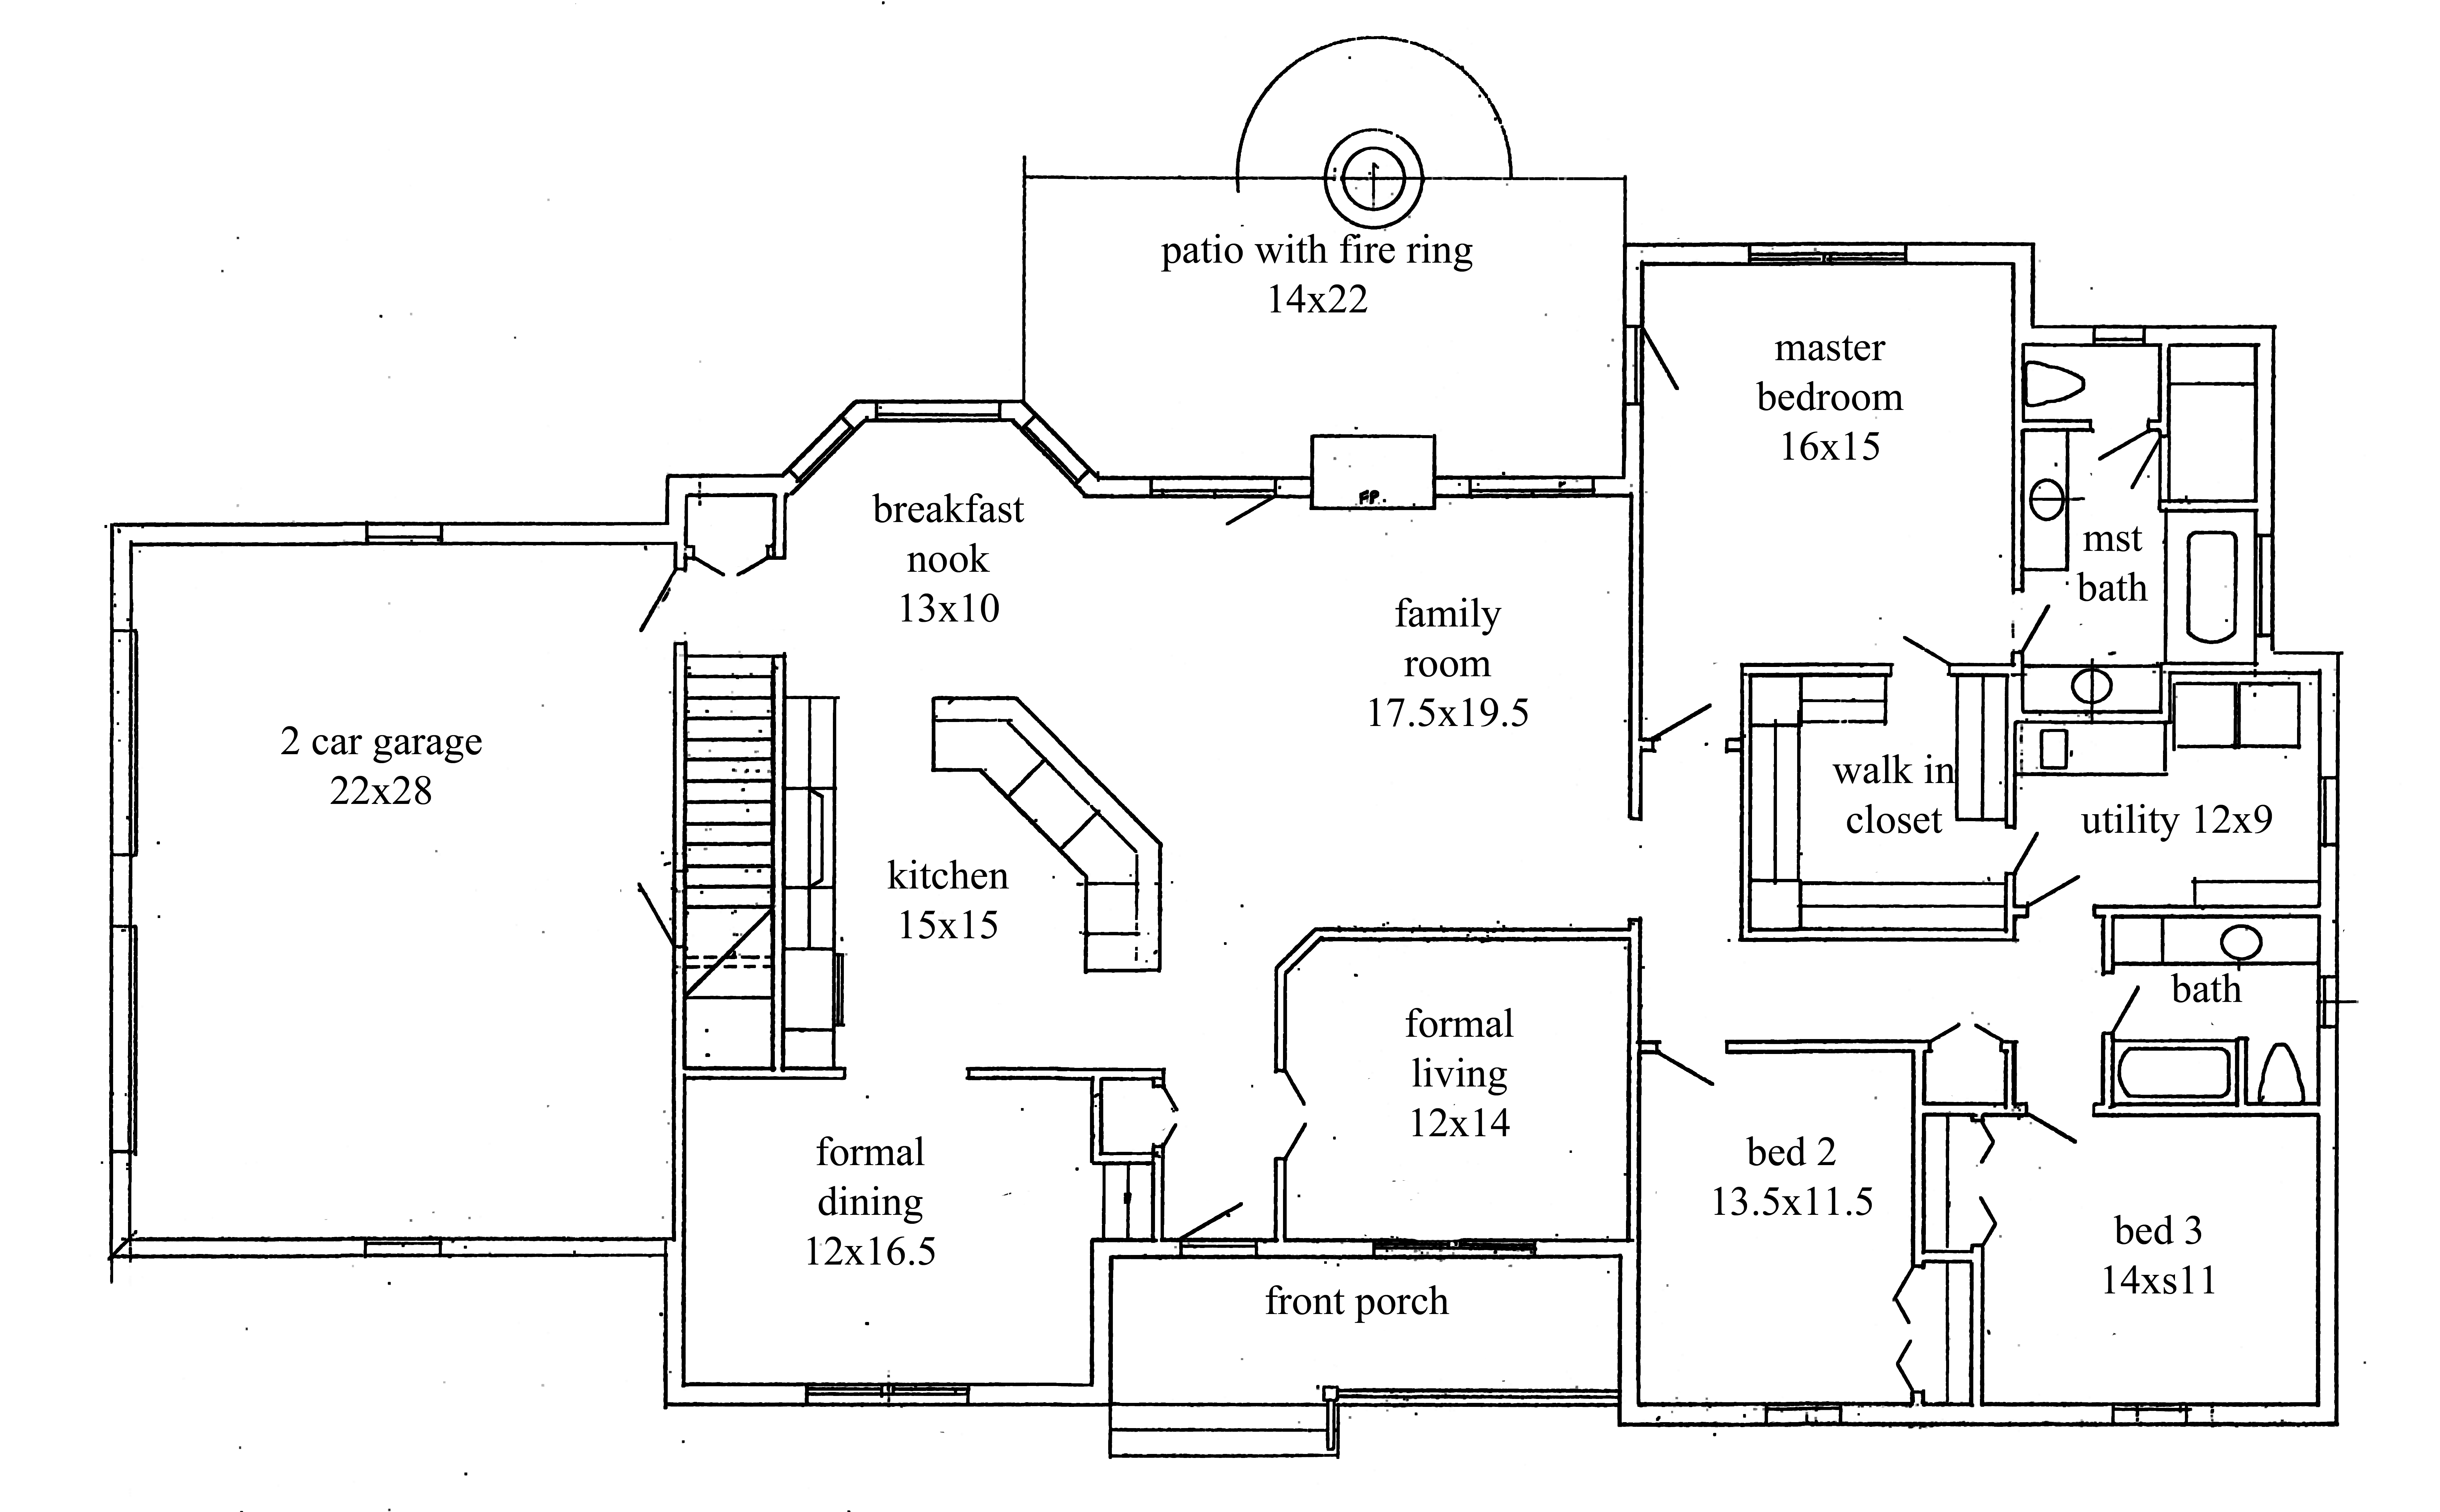 House plans new construction home floor plan for Design home floor plans